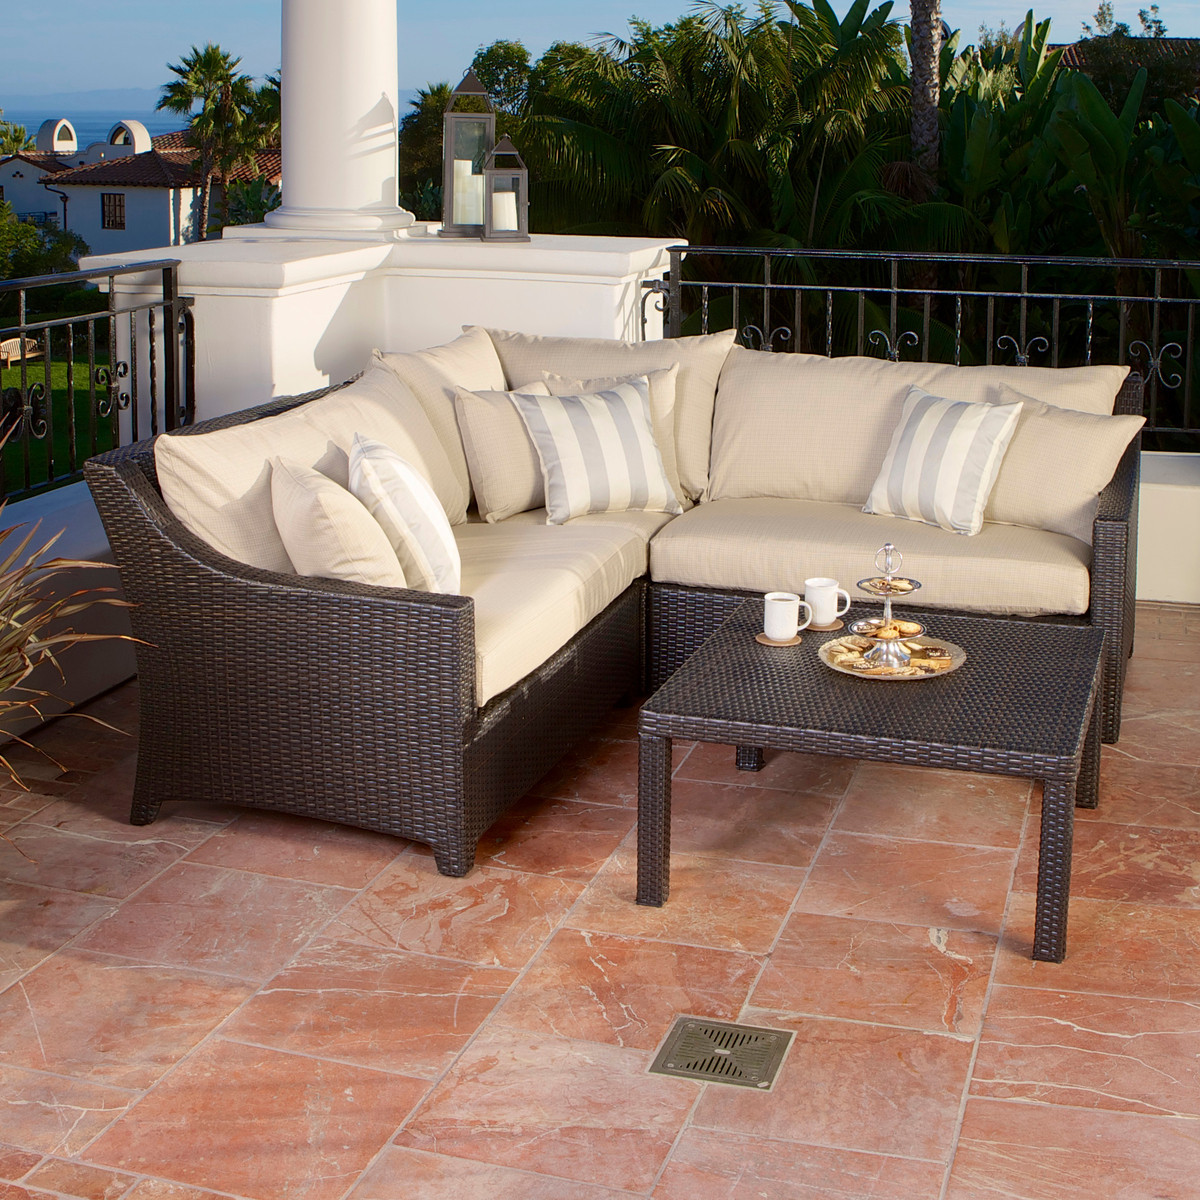 garden sofa and table sets room board leather bed rst brands slate 4 piece corner sectional coffee